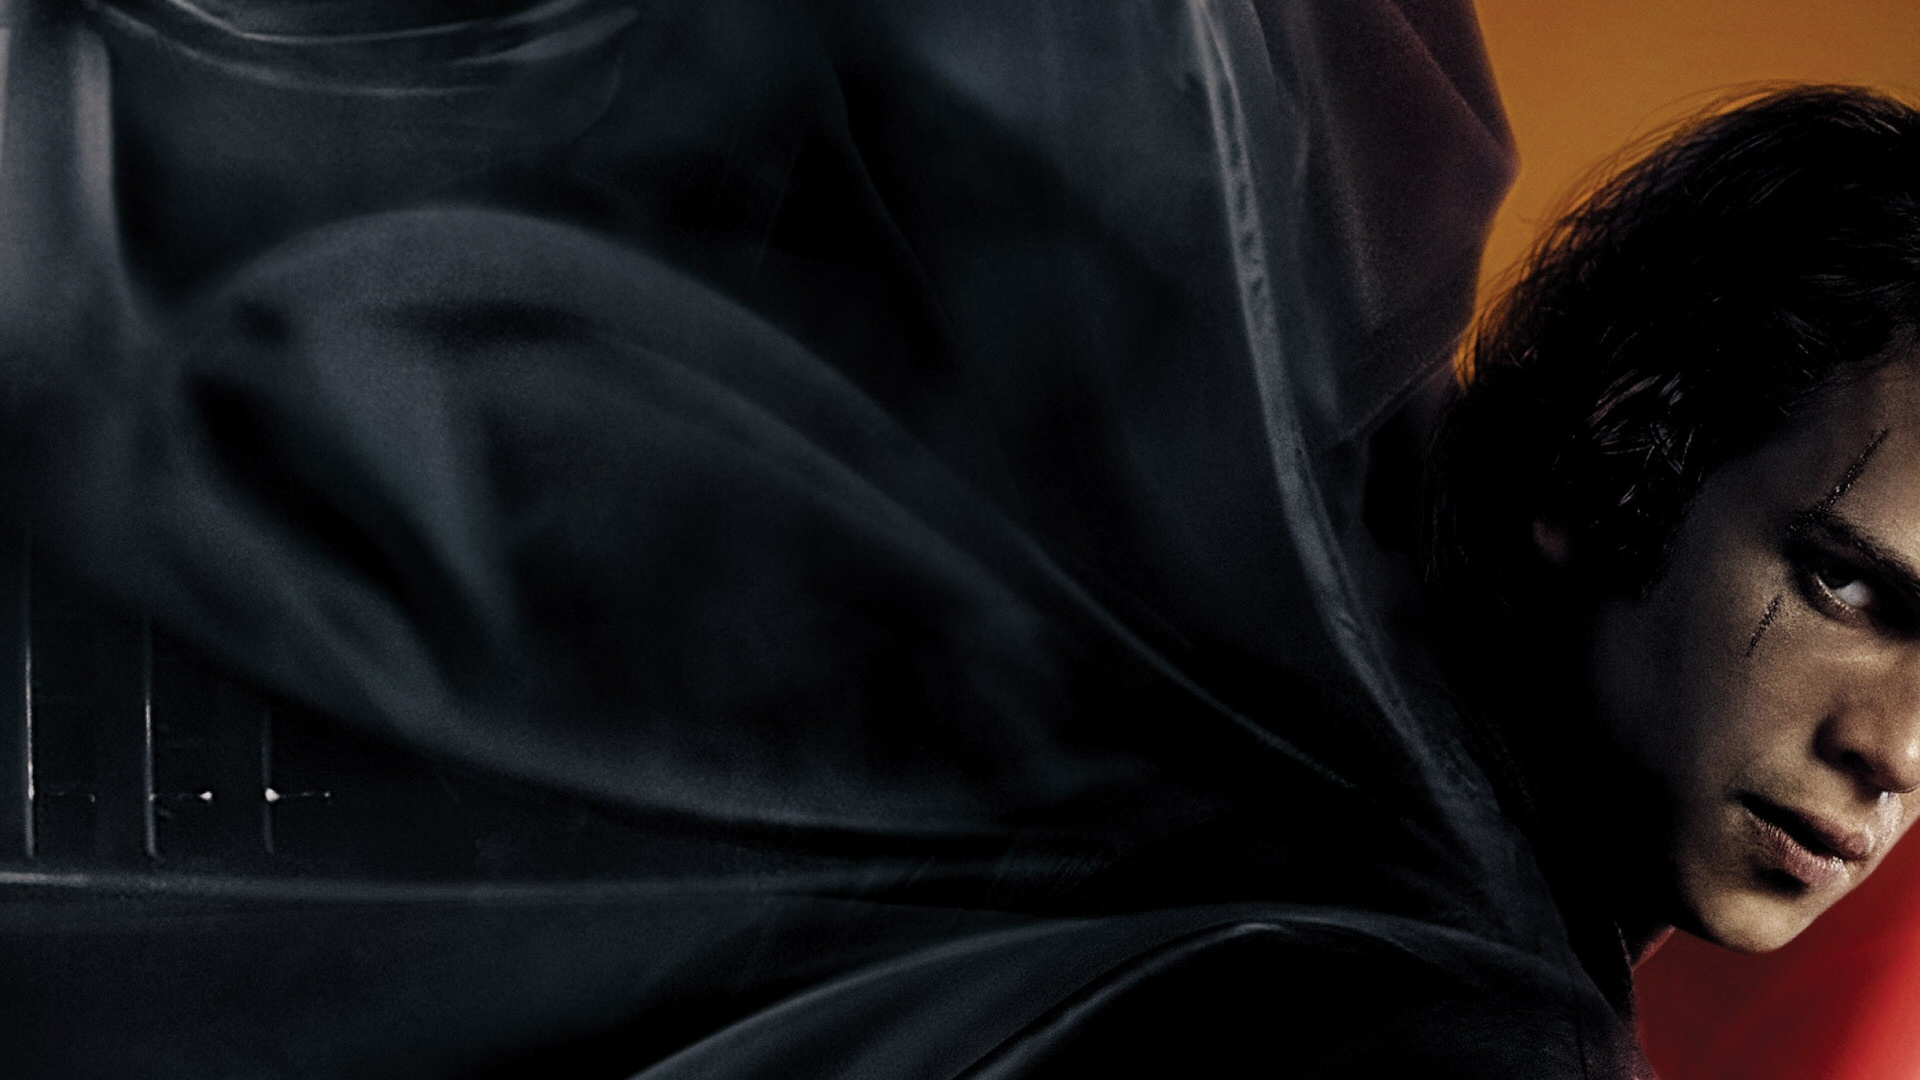 Free Download Episode Iii Revenge Of The Sith Wallpapers Poster Movie Wallpapers 1920x1080 For Your Desktop Mobile Tablet Explore 48 Revenge Of The Sith Wallpaper Star Wars Sith Wallpaper